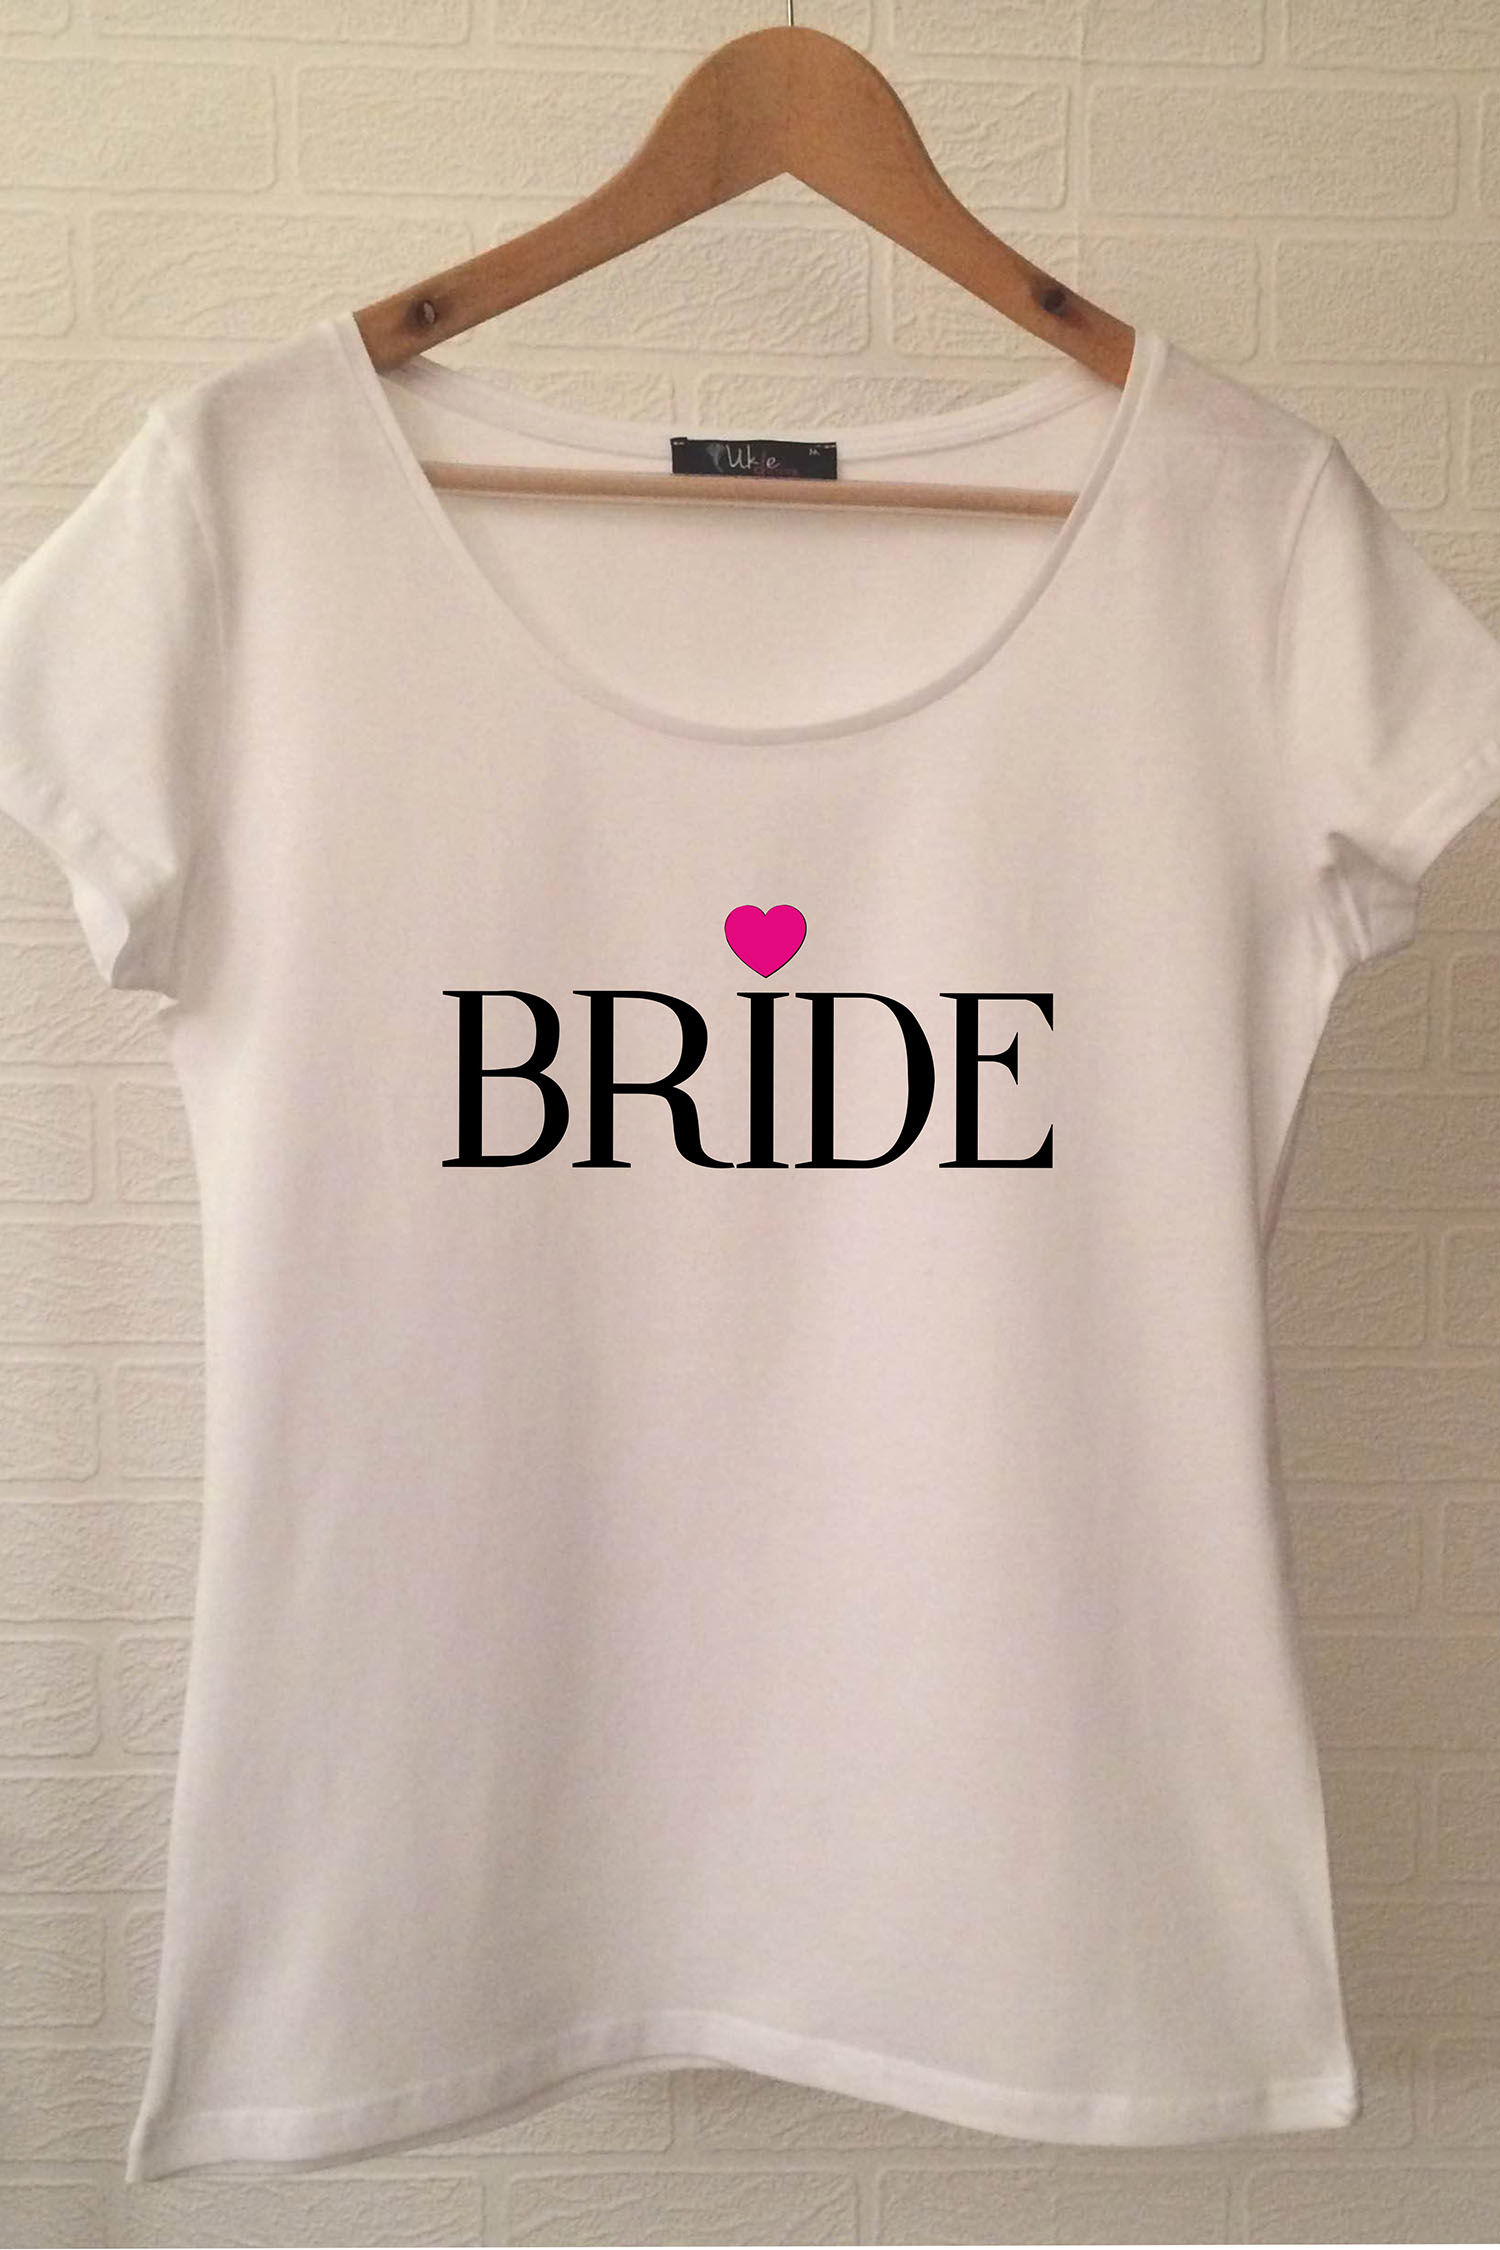 Bride T-shirt ukde103